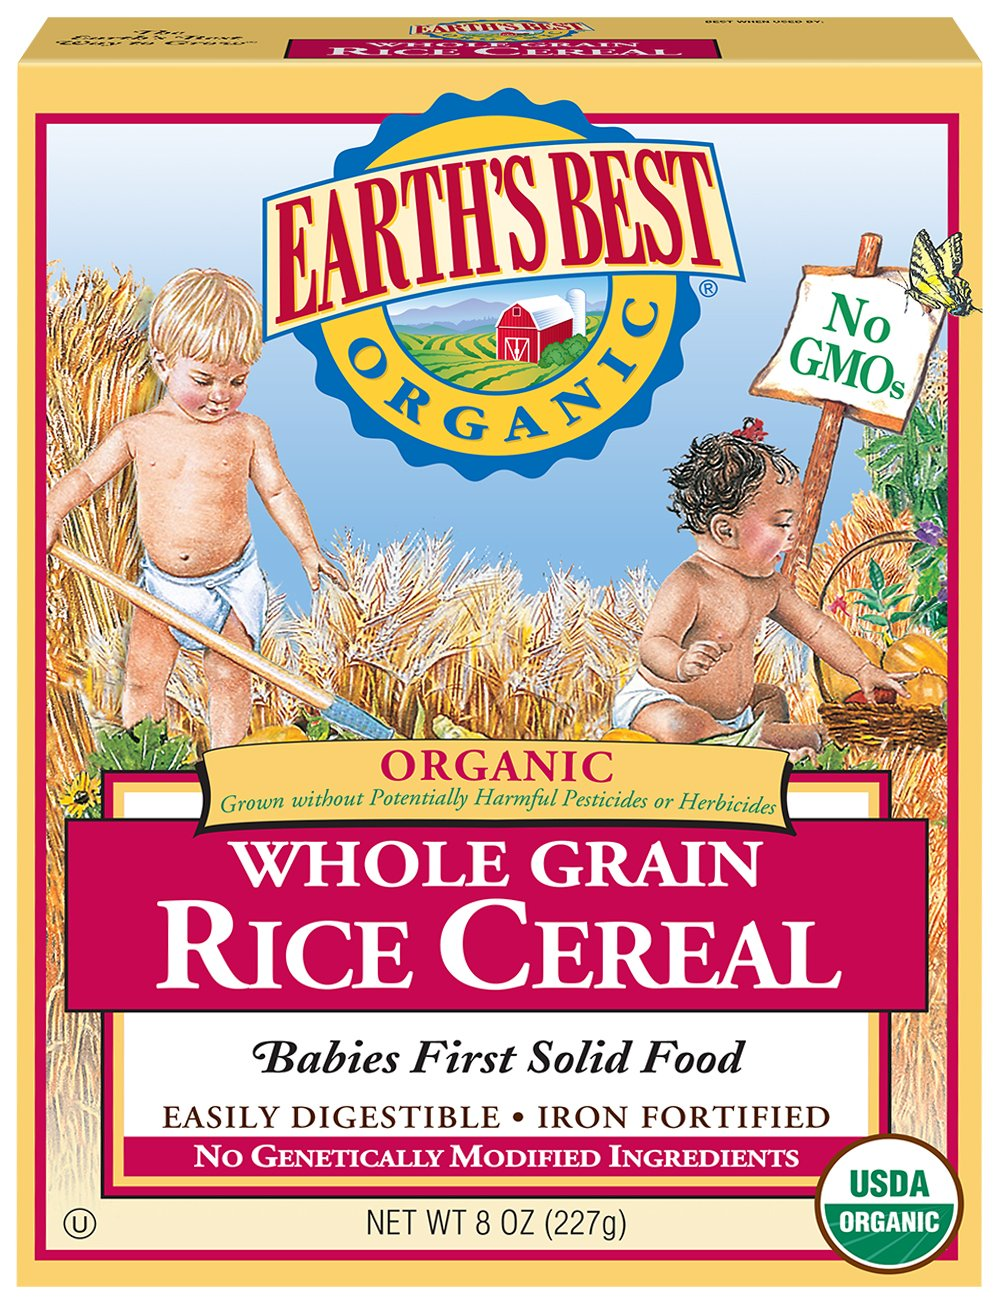 Earth's Best Organic Whole Grain Rice Cereal, 8 Oz Earth' s Best 023923900011